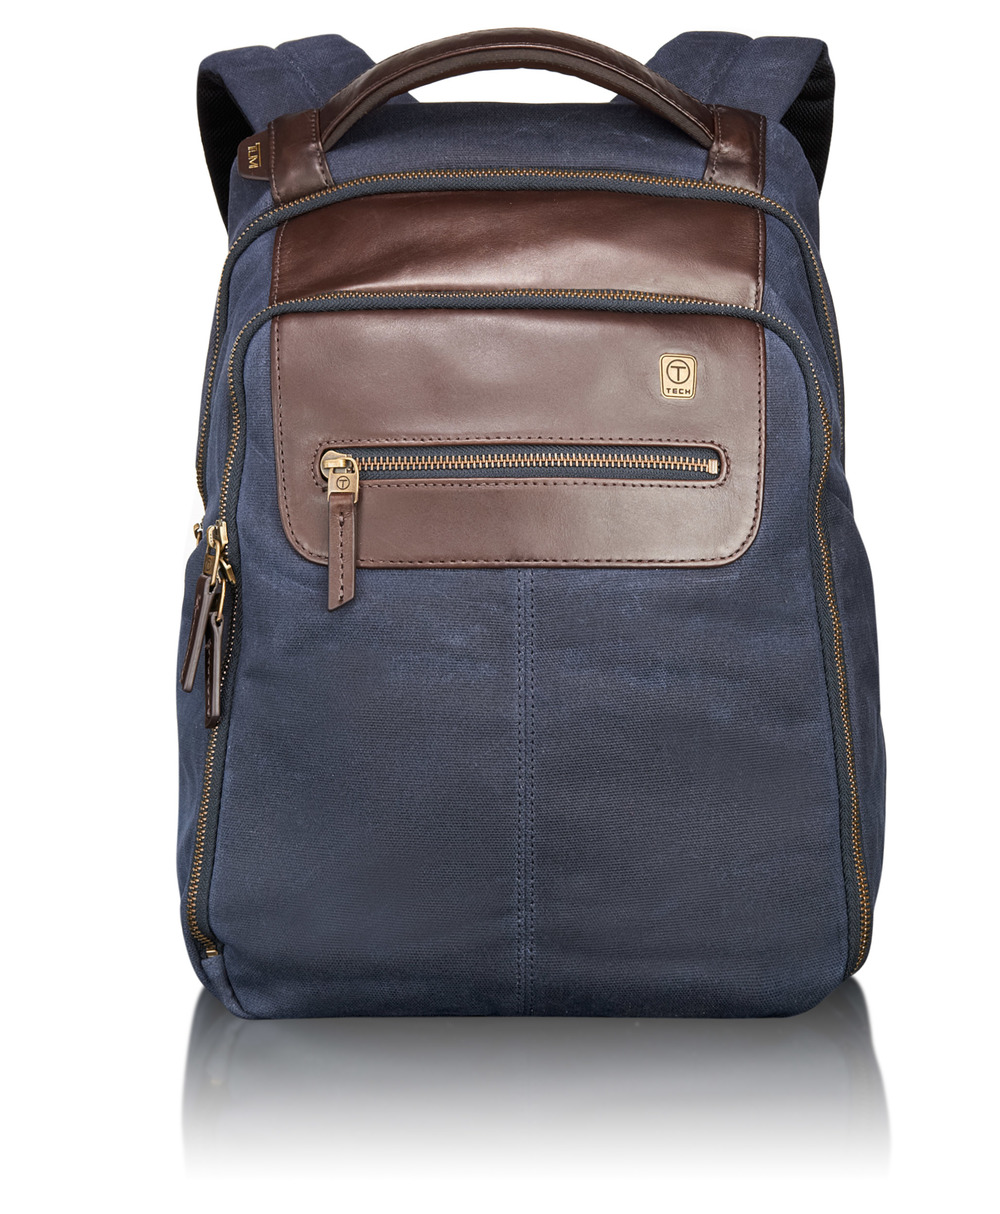 55180 Navy T-Tech Forge Steel City Slim Backpack .jpg